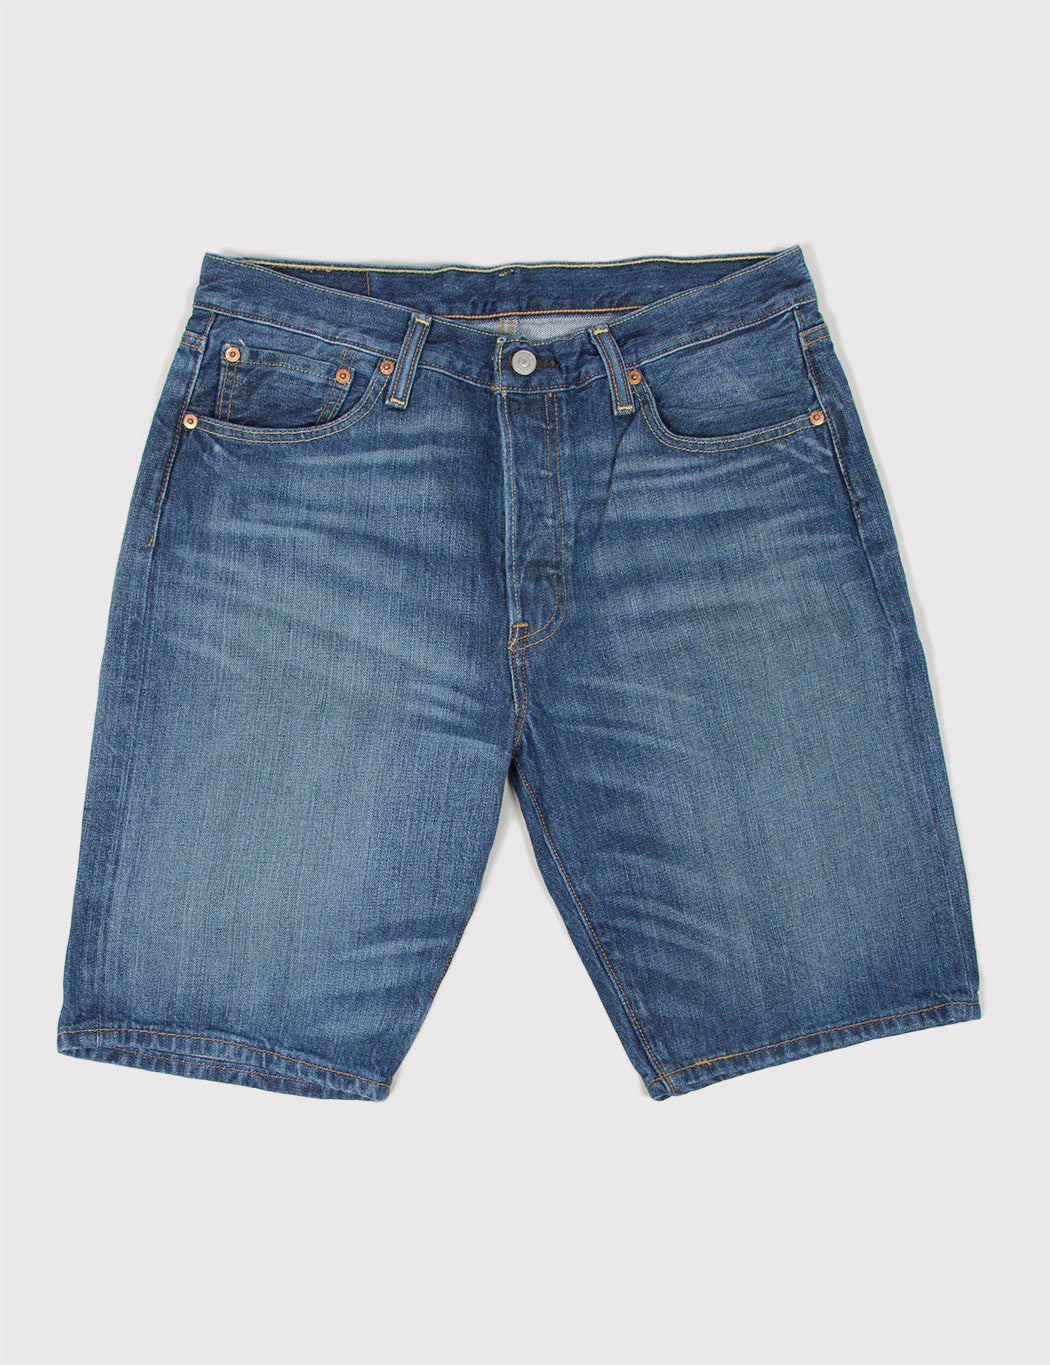 Levis 501 Denim Shorts (Regular) - Torreon